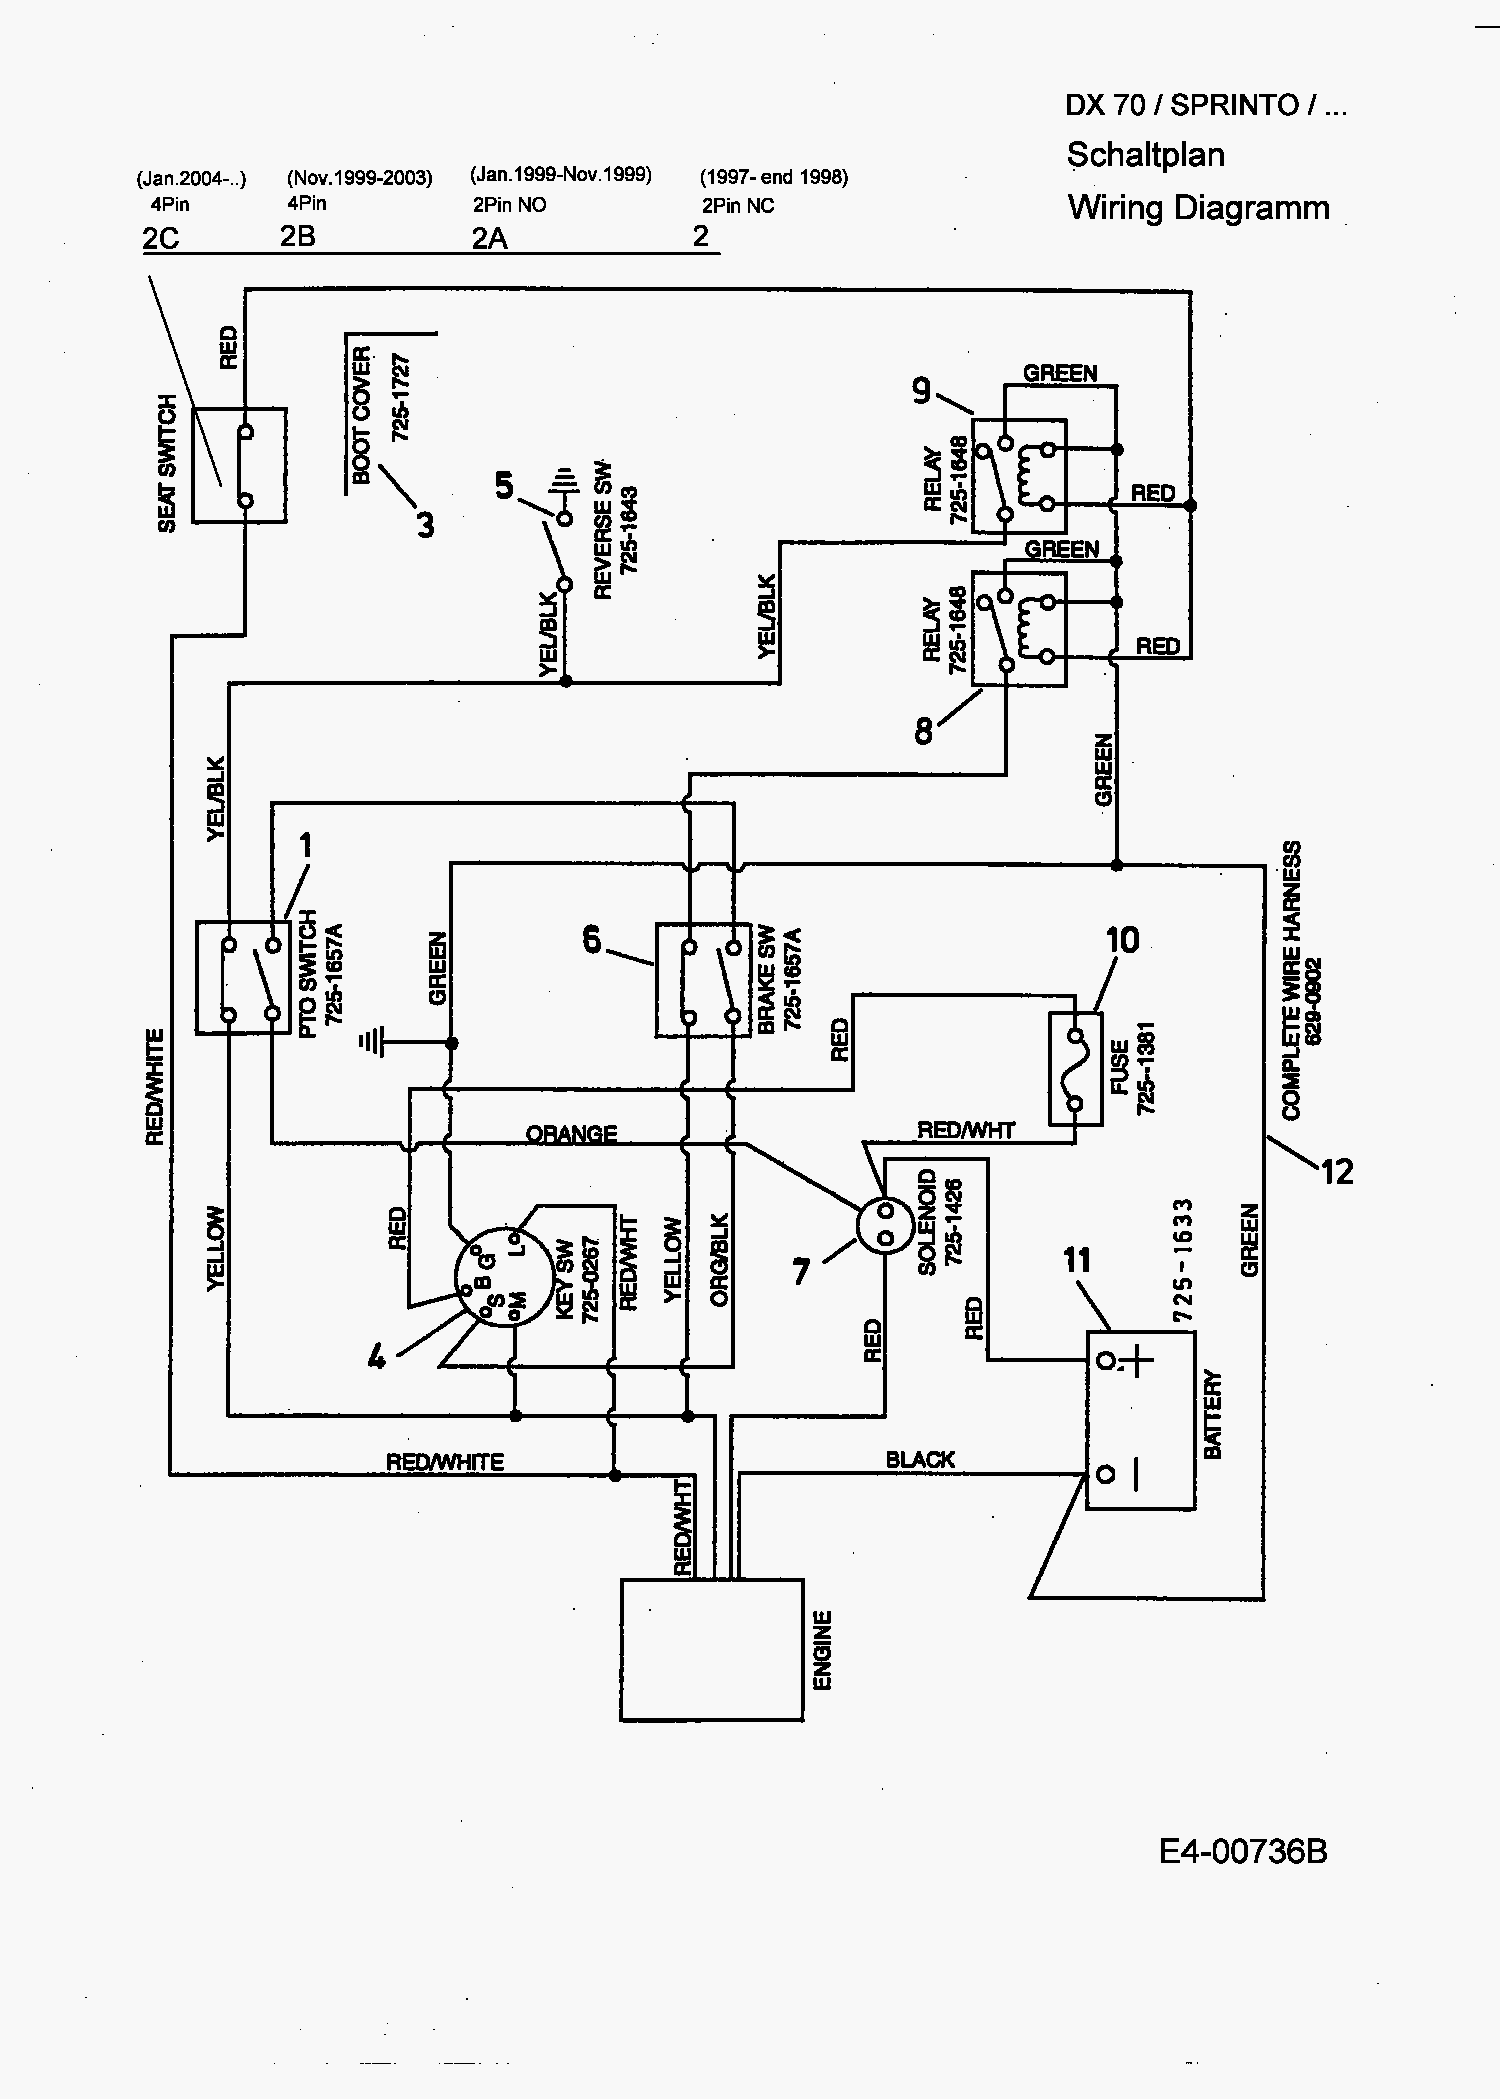 snapper pro wiring diagram need ignition wiring diagram for a key 1993 Chevy Cavalier Fuse Diagram wiring diagrams for huskee riding lawn mowers the wiring diagram snapper riding lawn mower wiring diagram